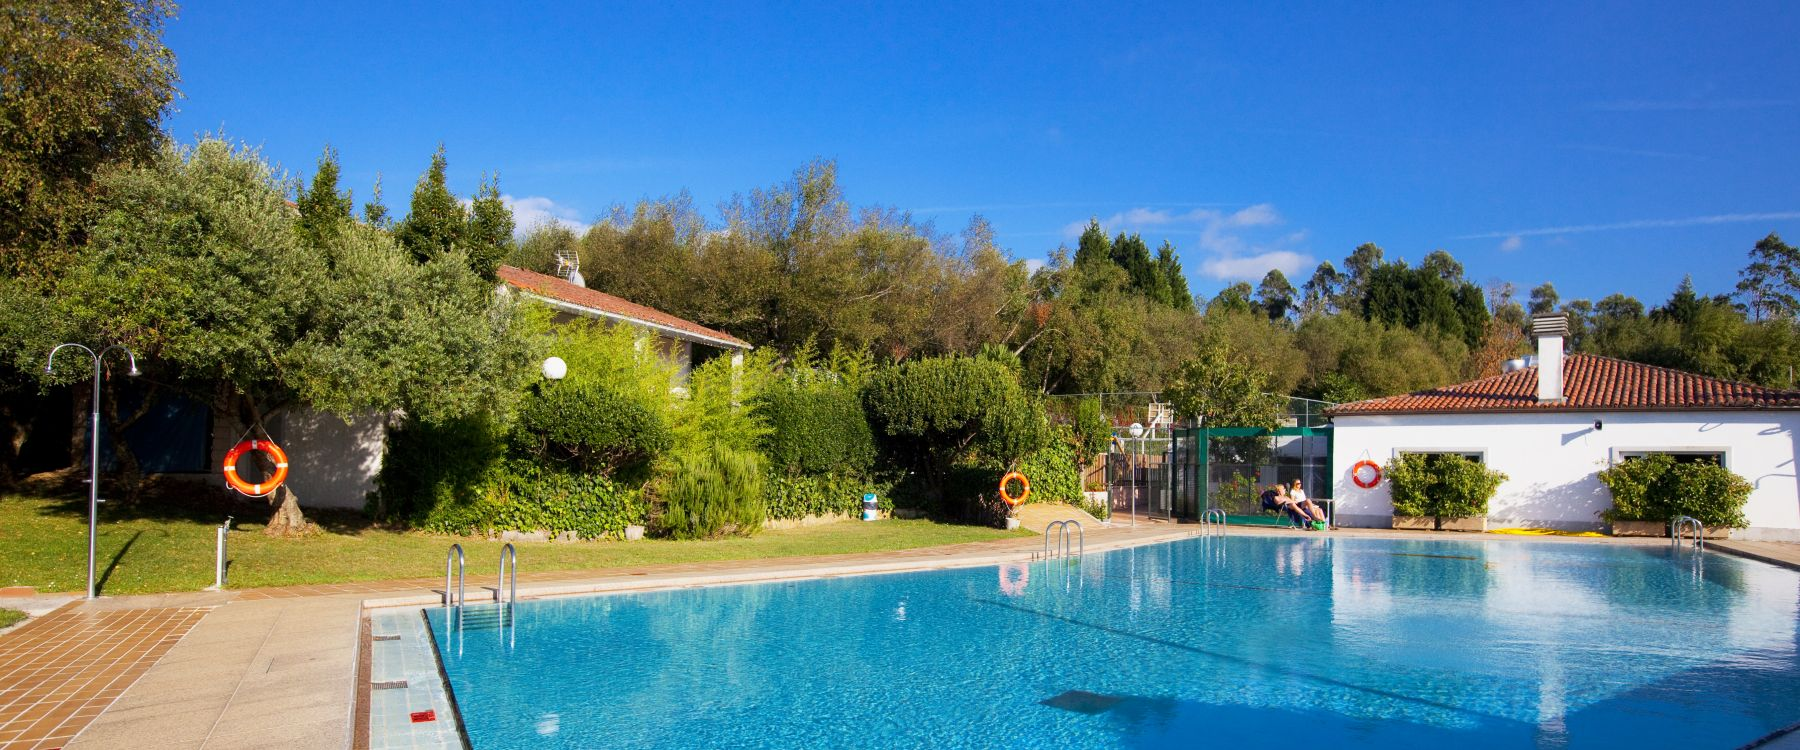 piscinas Campingred